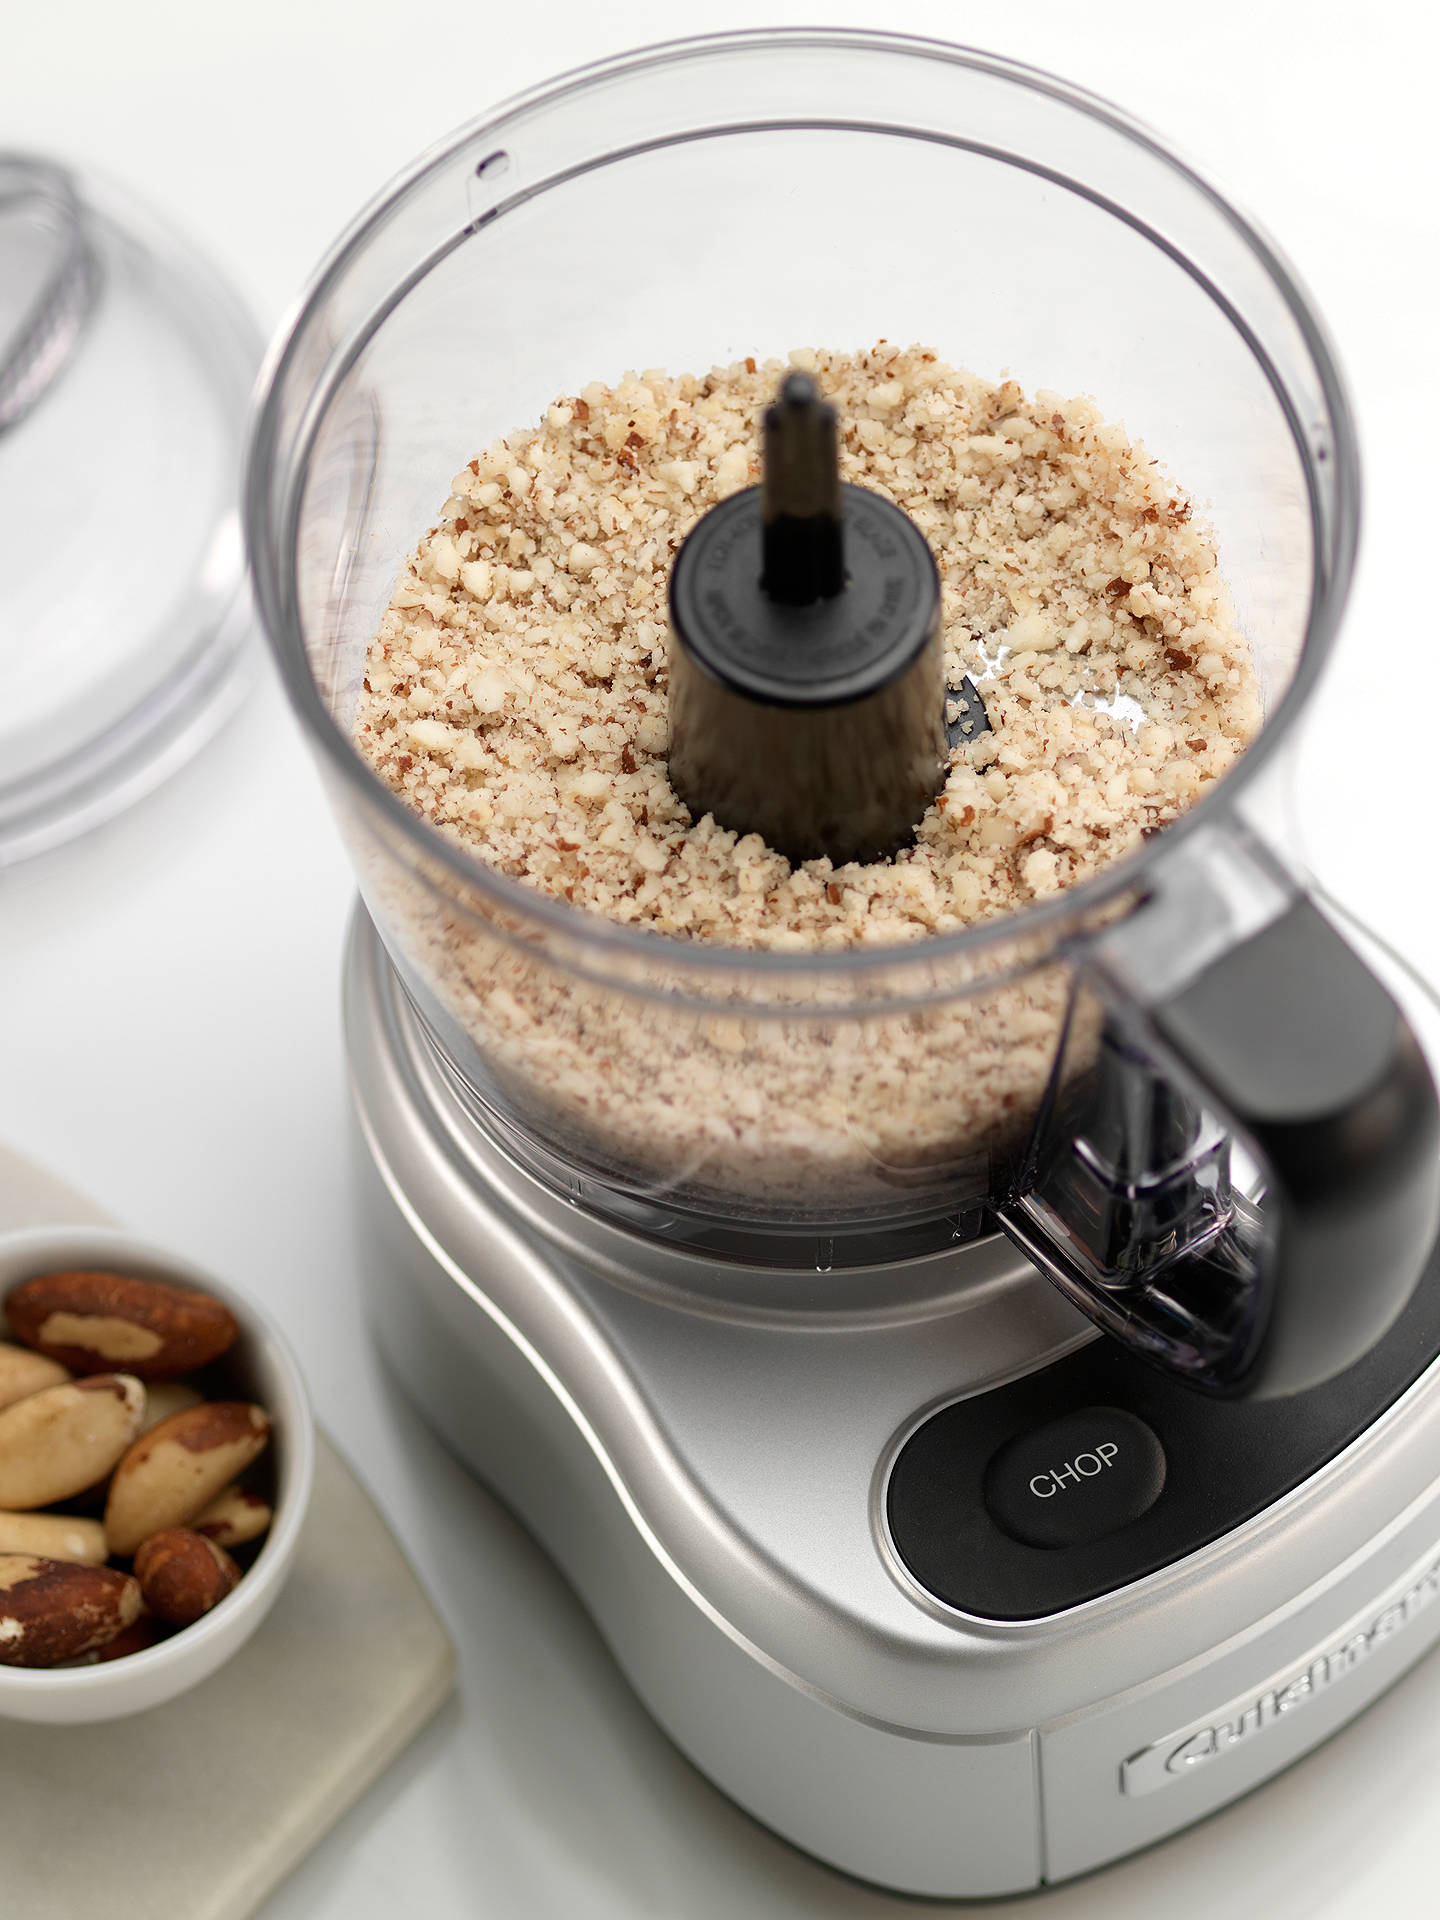 Buy Cuisinart Mini Prep Pro Compact Food Processor, Silver Online at johnlewis.com